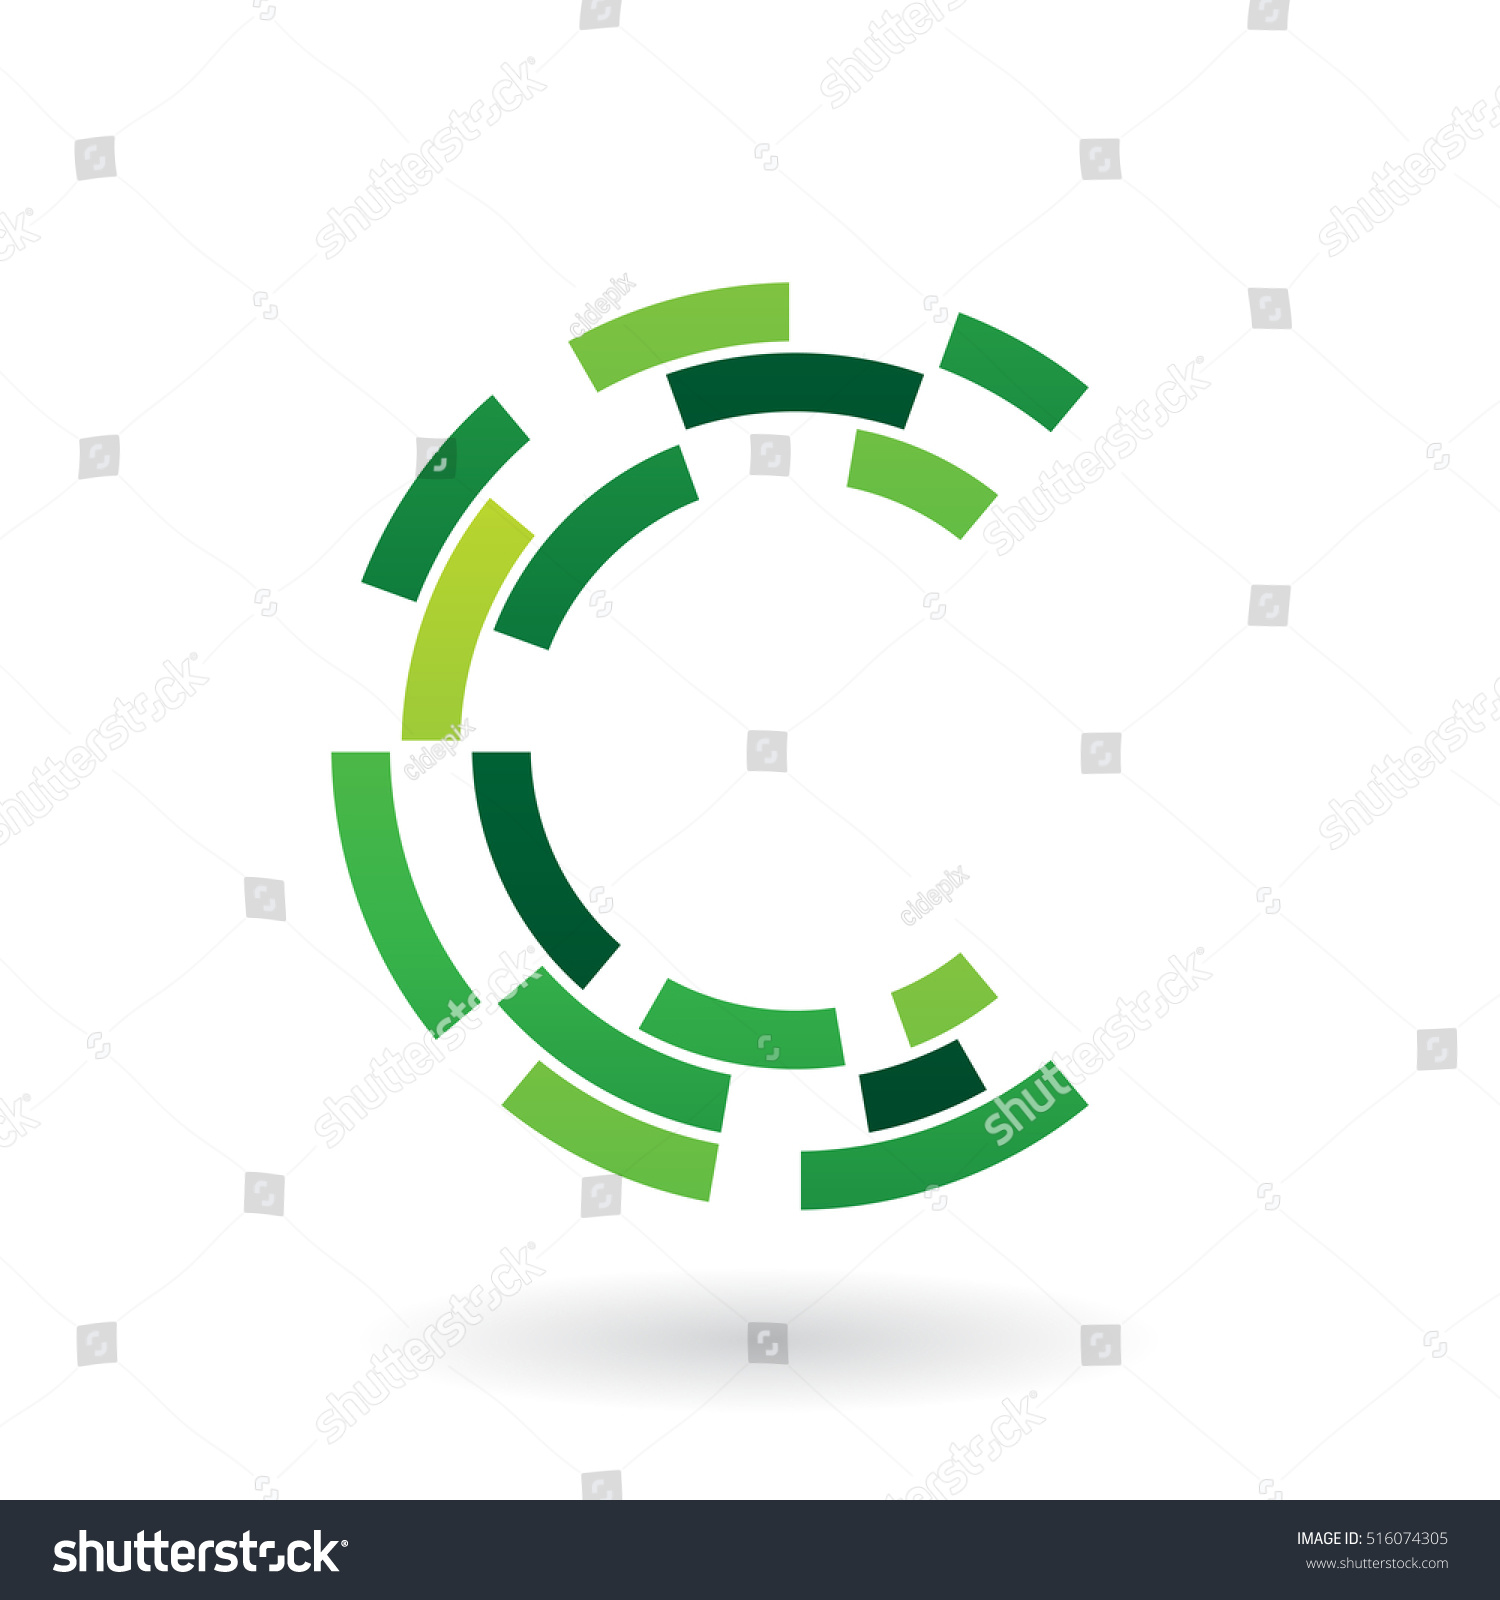 Design Concept Abstract Icon Letter C Stock Vector